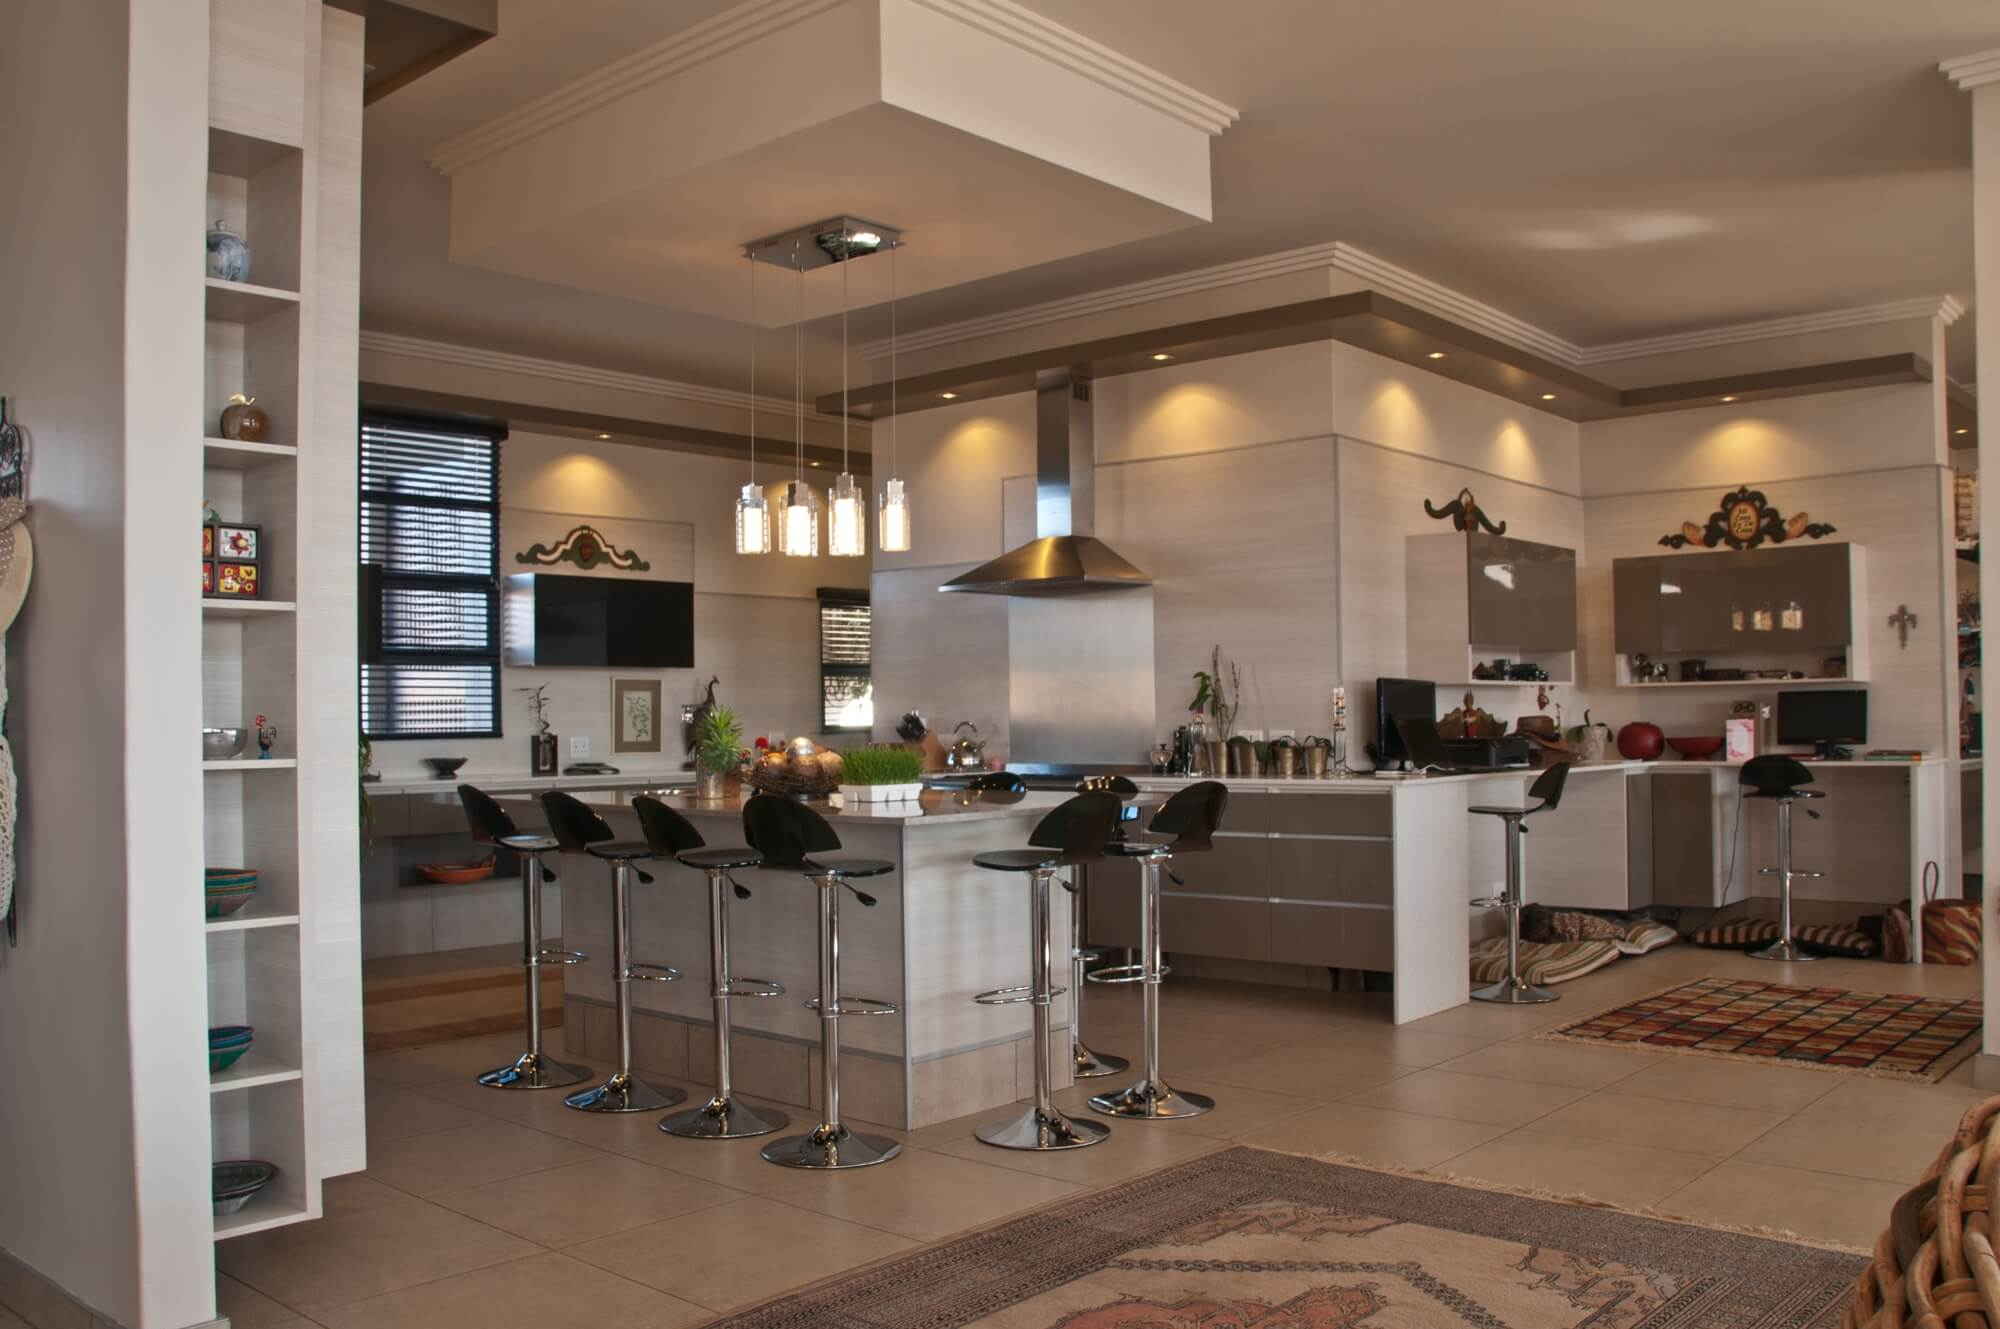 Kitchen design pretoria kitchen frontiers contact us - Kitchen built in cupboards designs ...